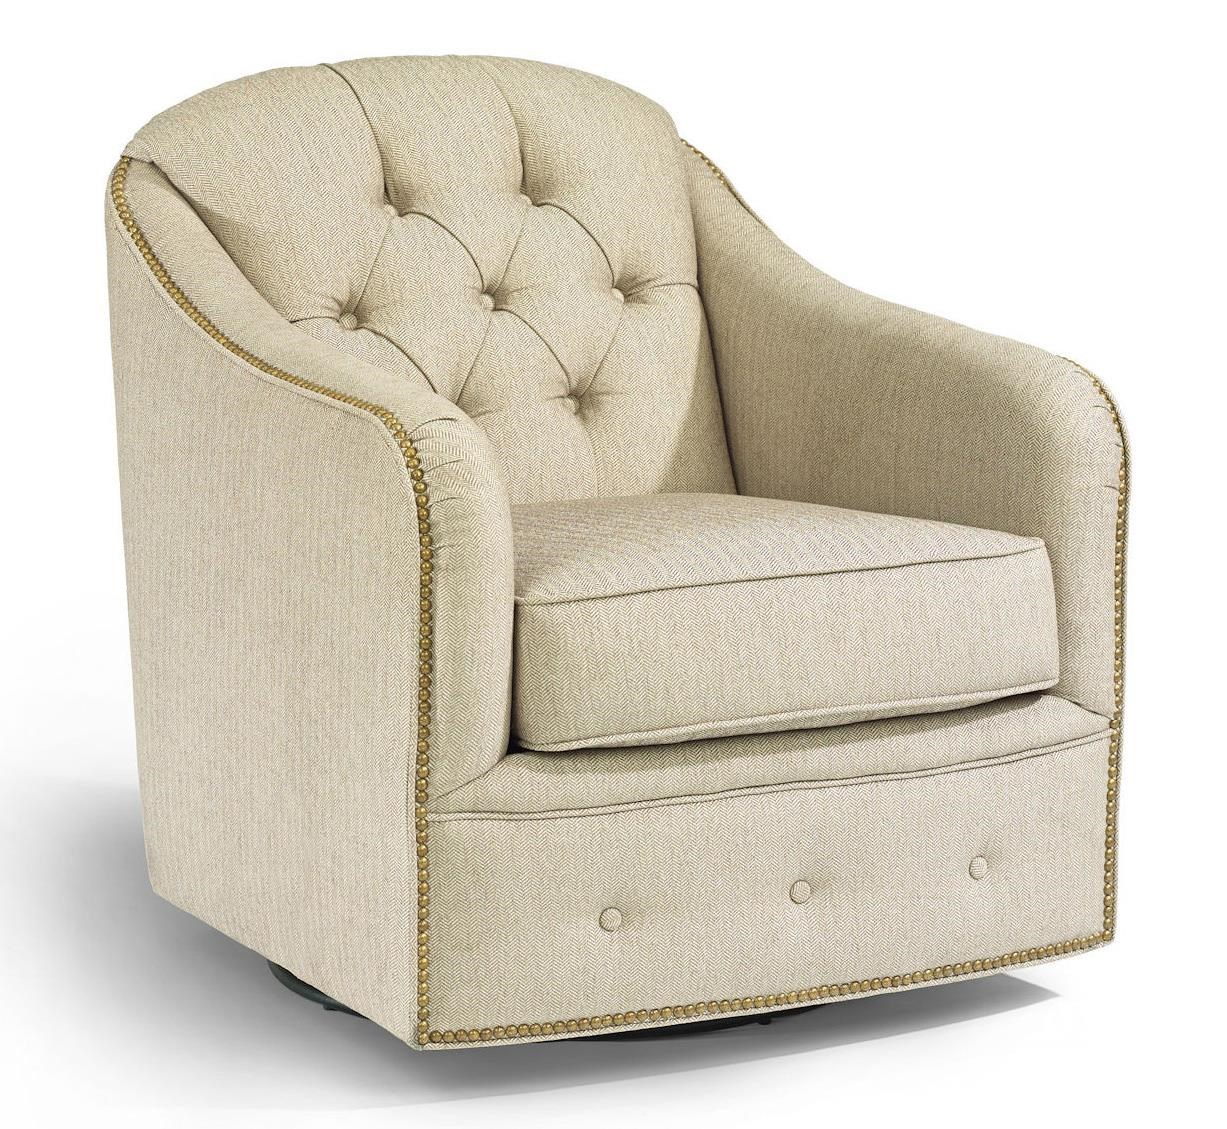 Flexsteel Accents Fairchild Swivel Chair with Nailhead